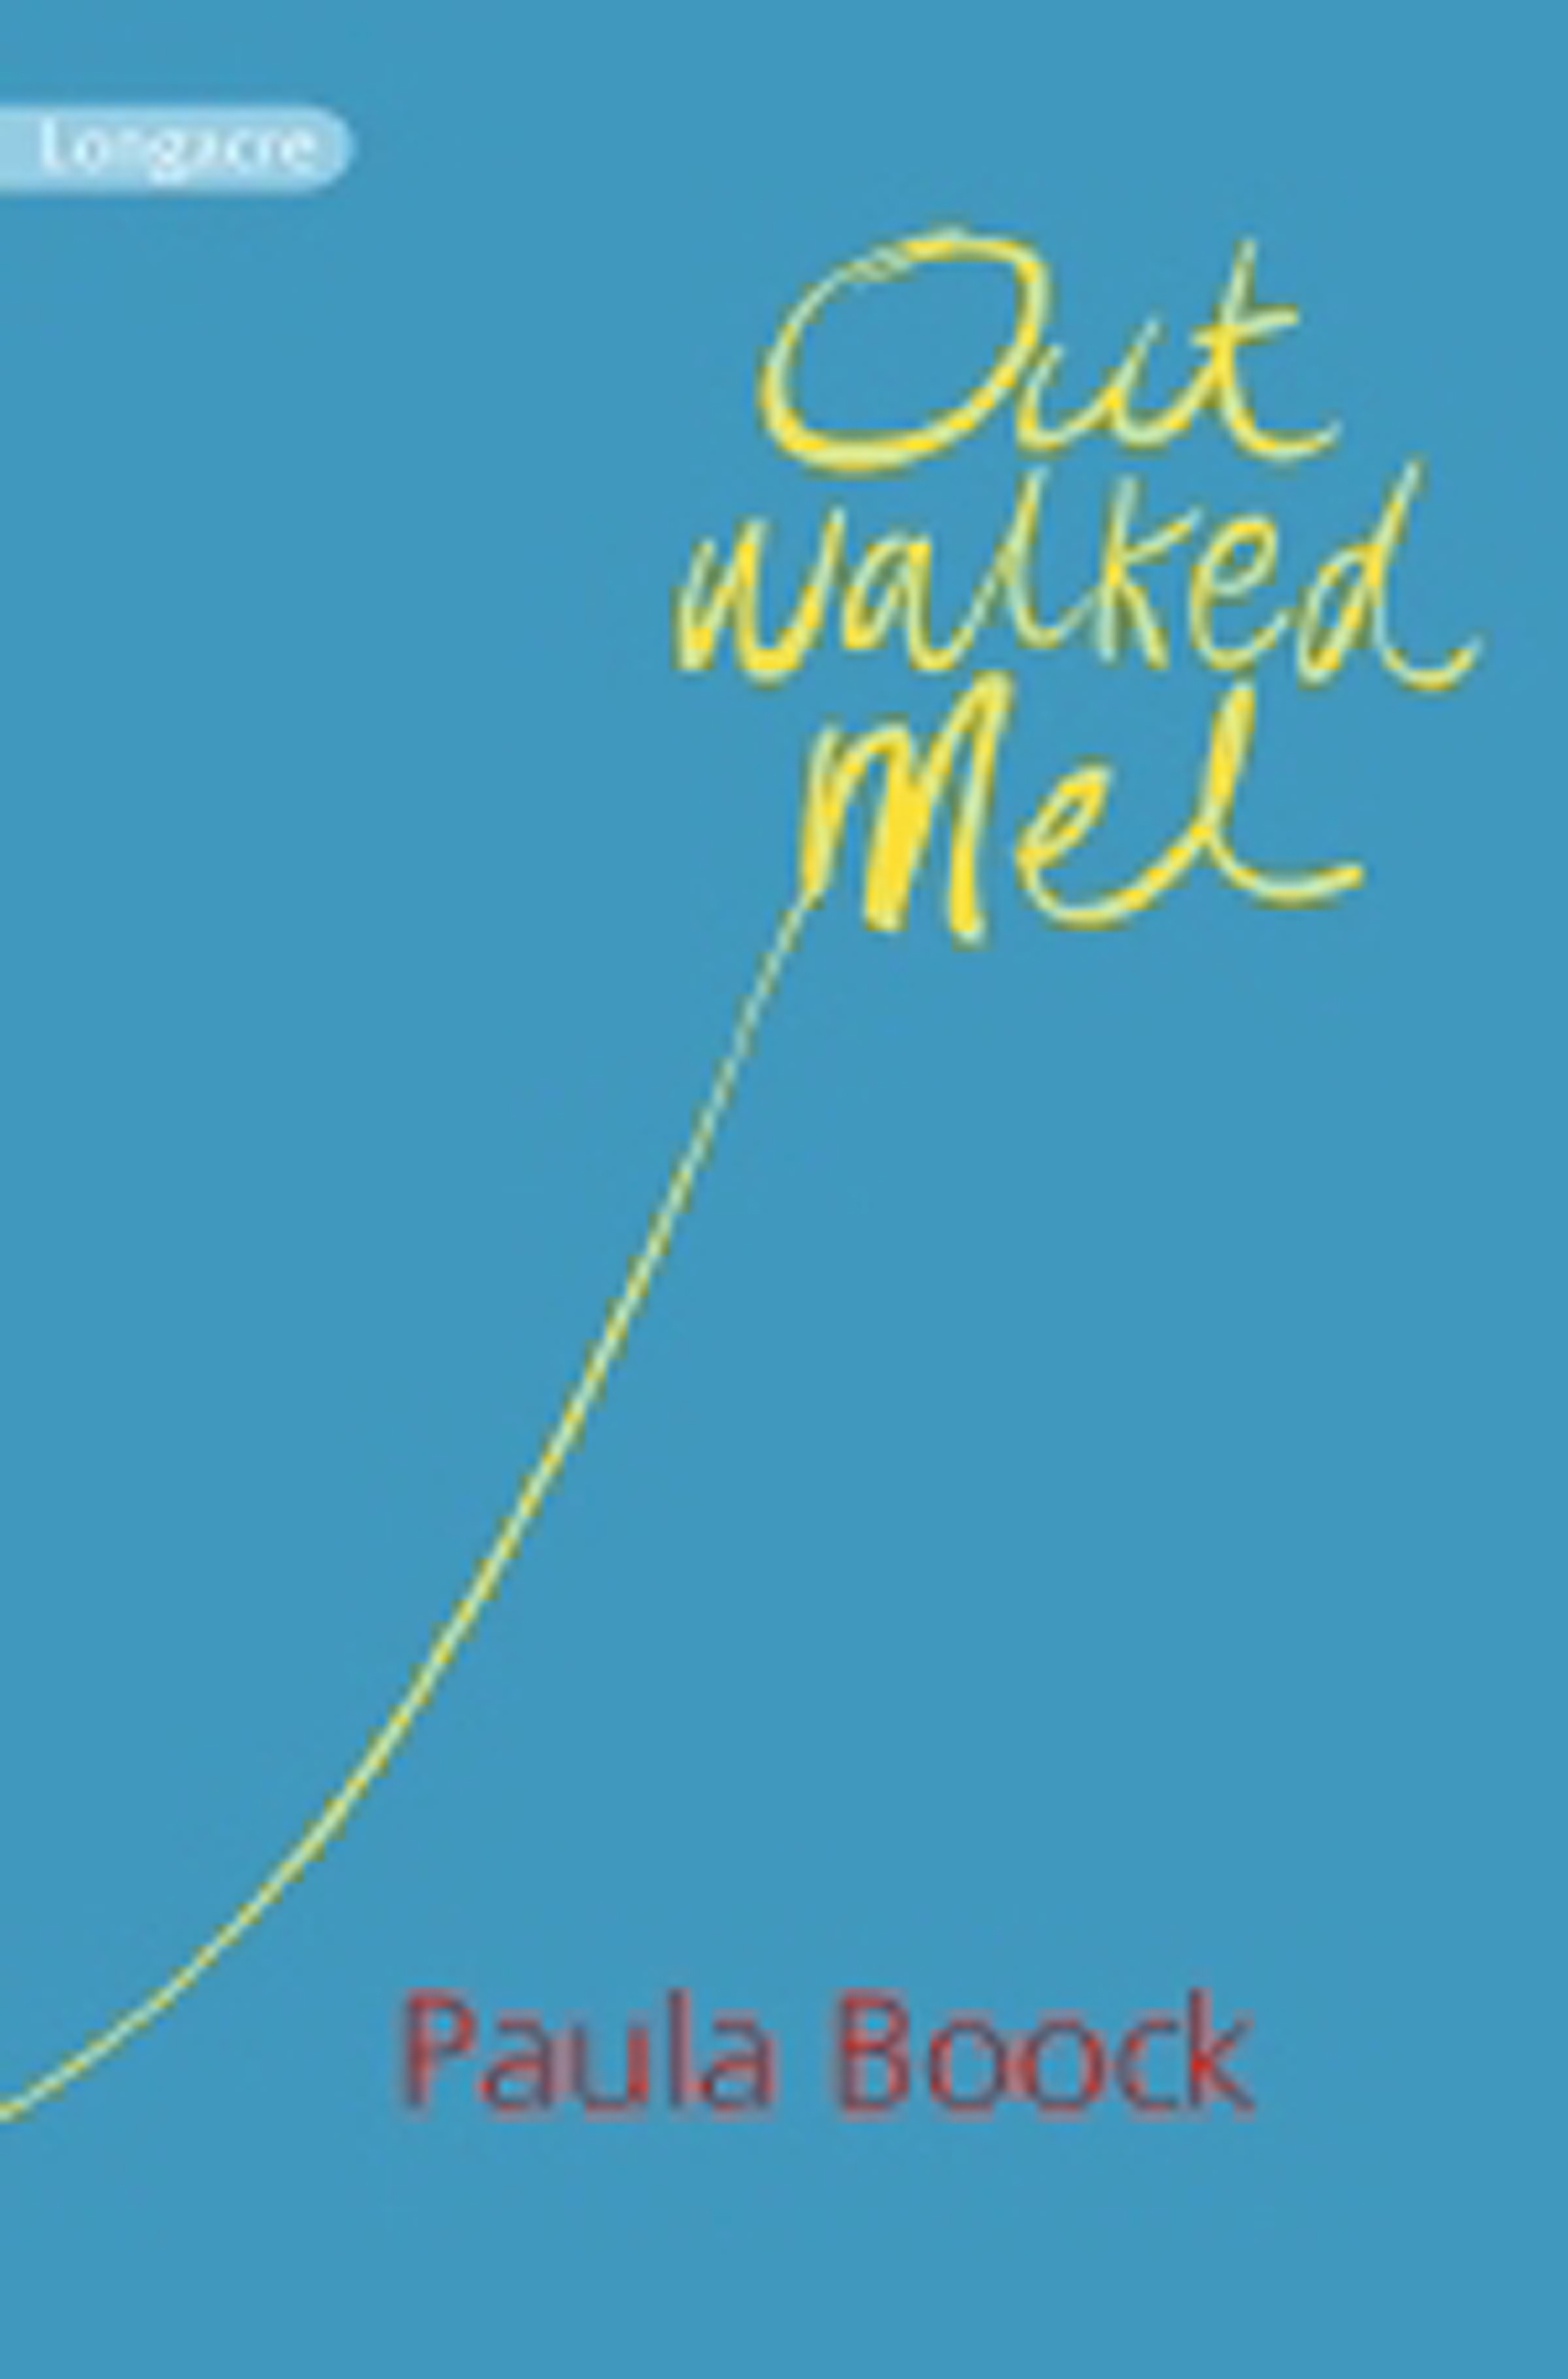 out walked mel essay Prices (including delivery) for out walked mel by paula boock isbn: 9781775530701.